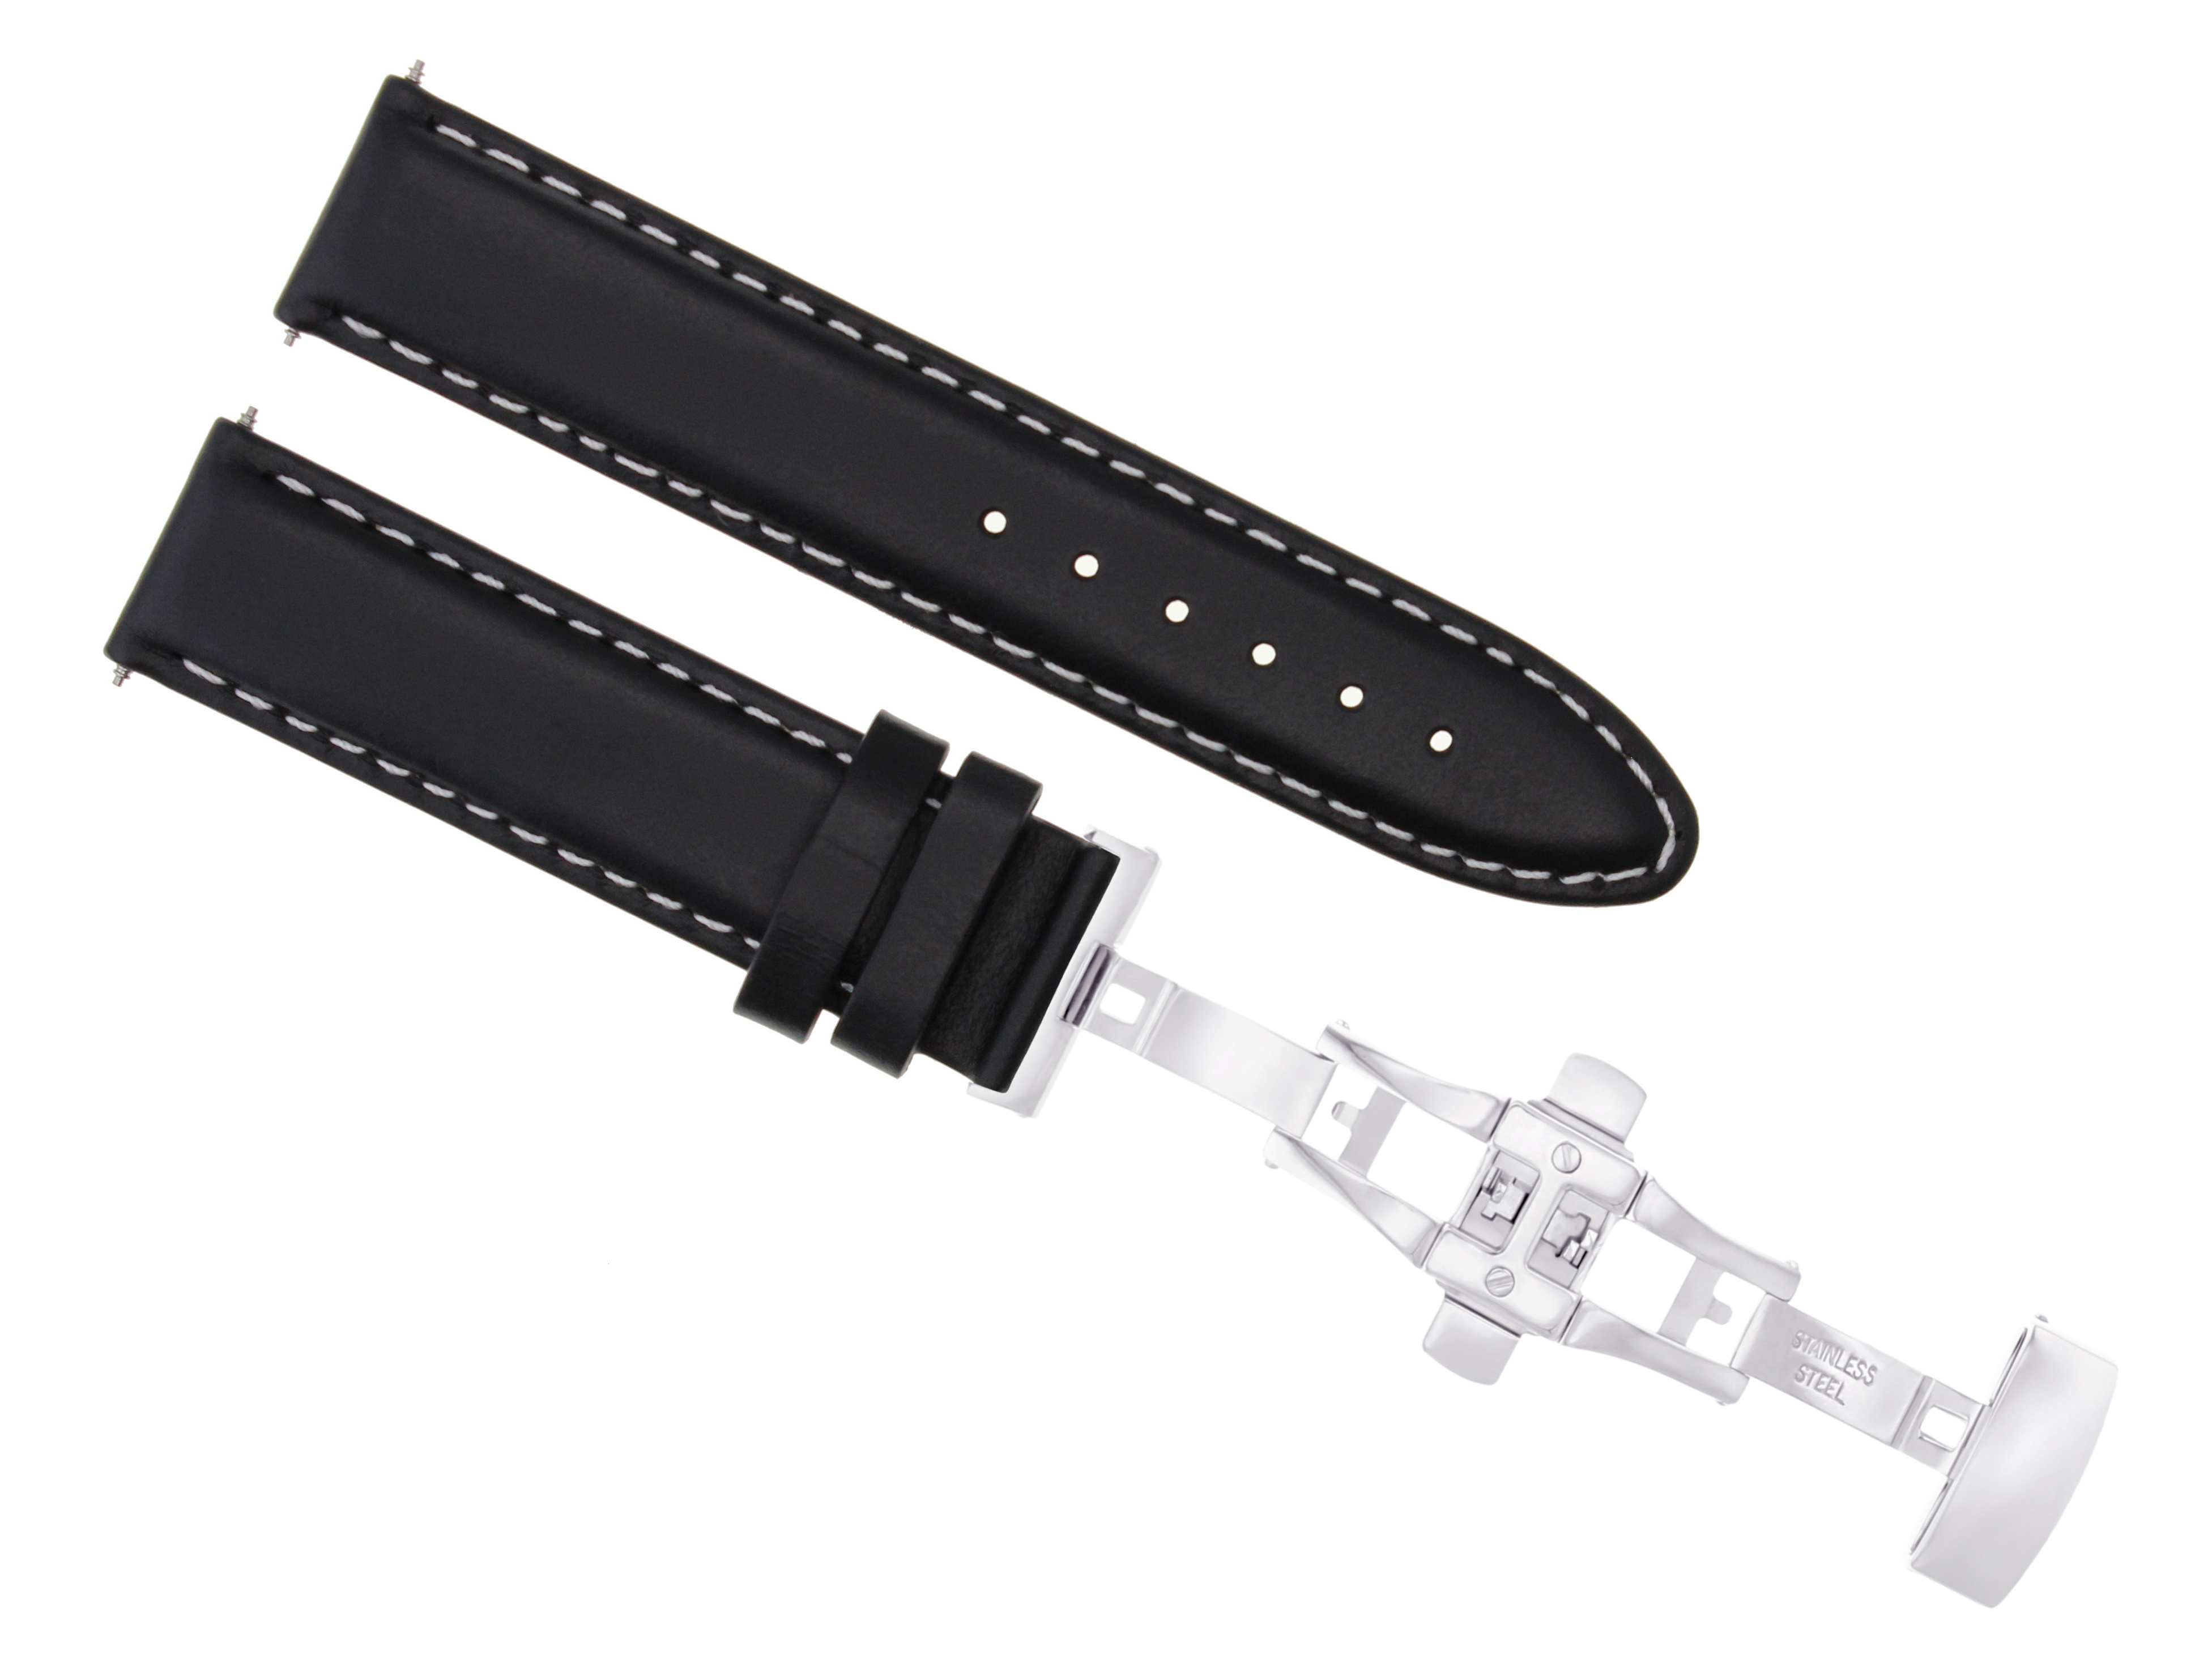 18MM LEATHER WATCH BAND STRAP FOR ROLEX DATE WATCH DEPLOYMENT CLASP BLACK WS